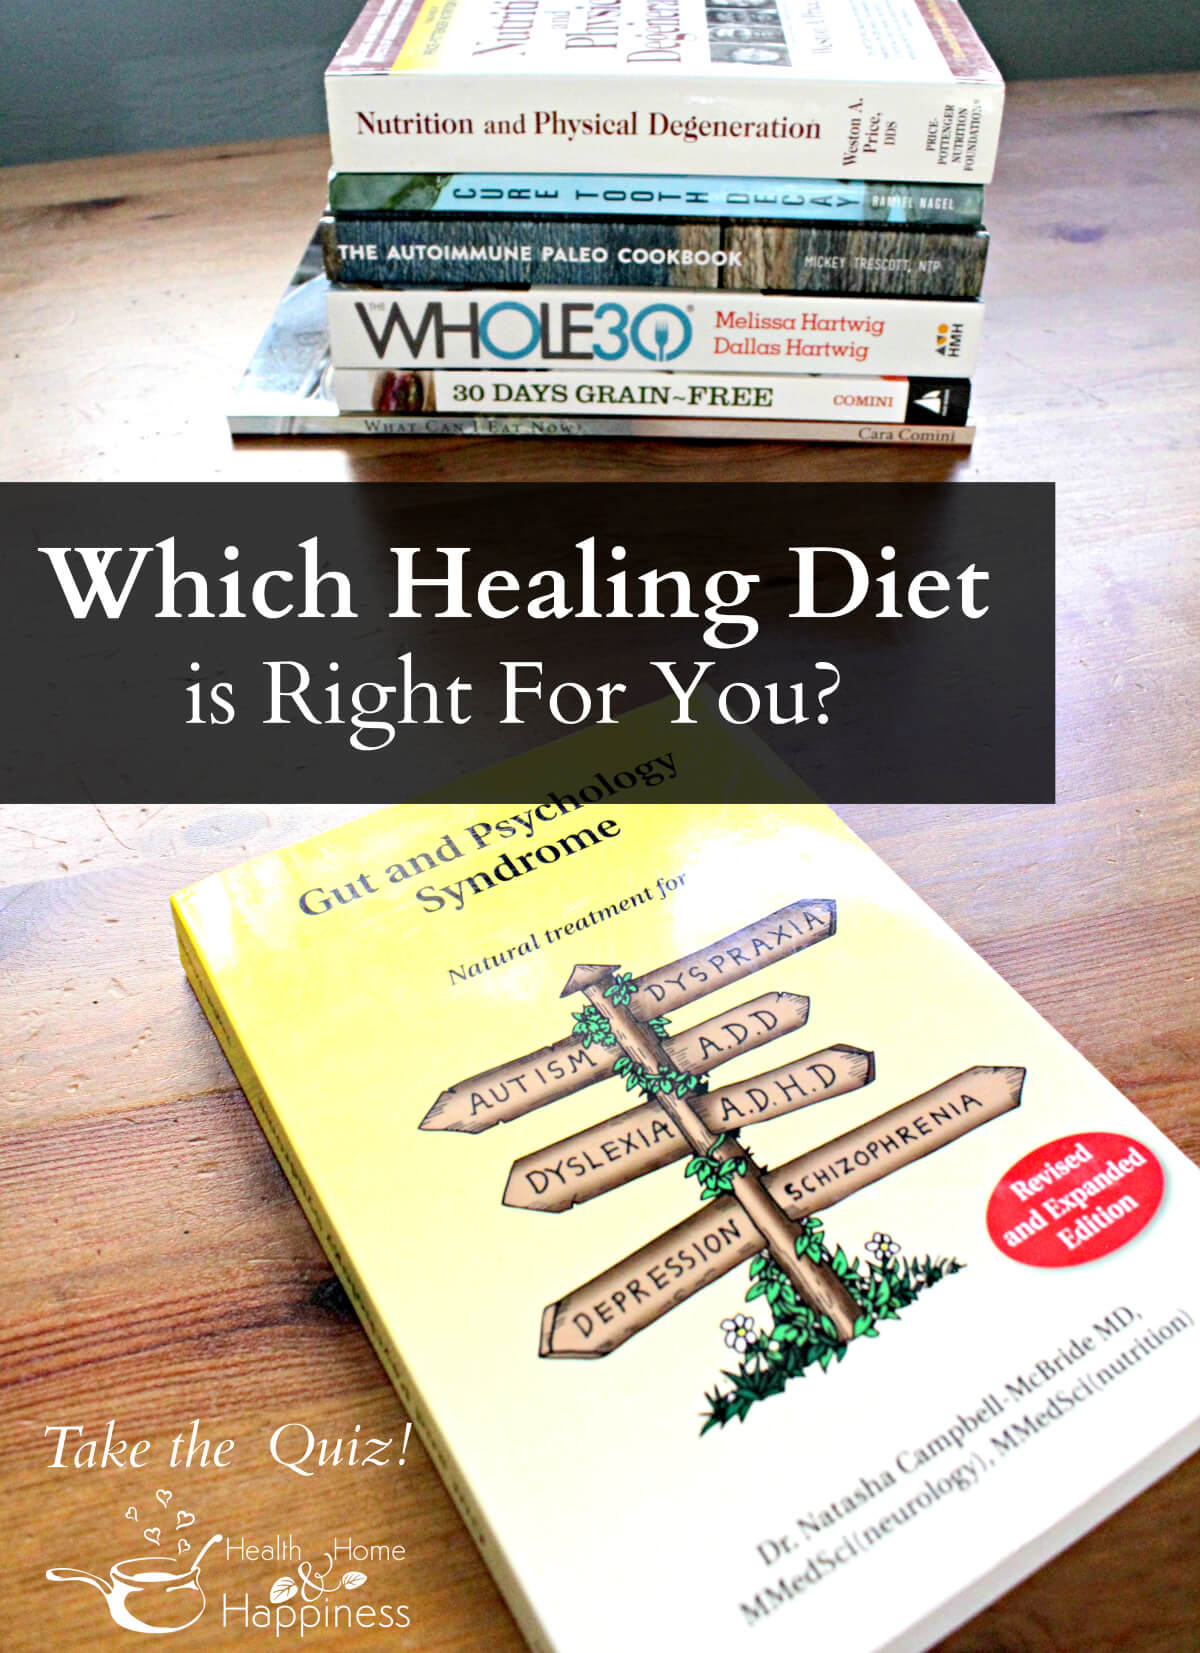 Which Healing Diet is Right For You?